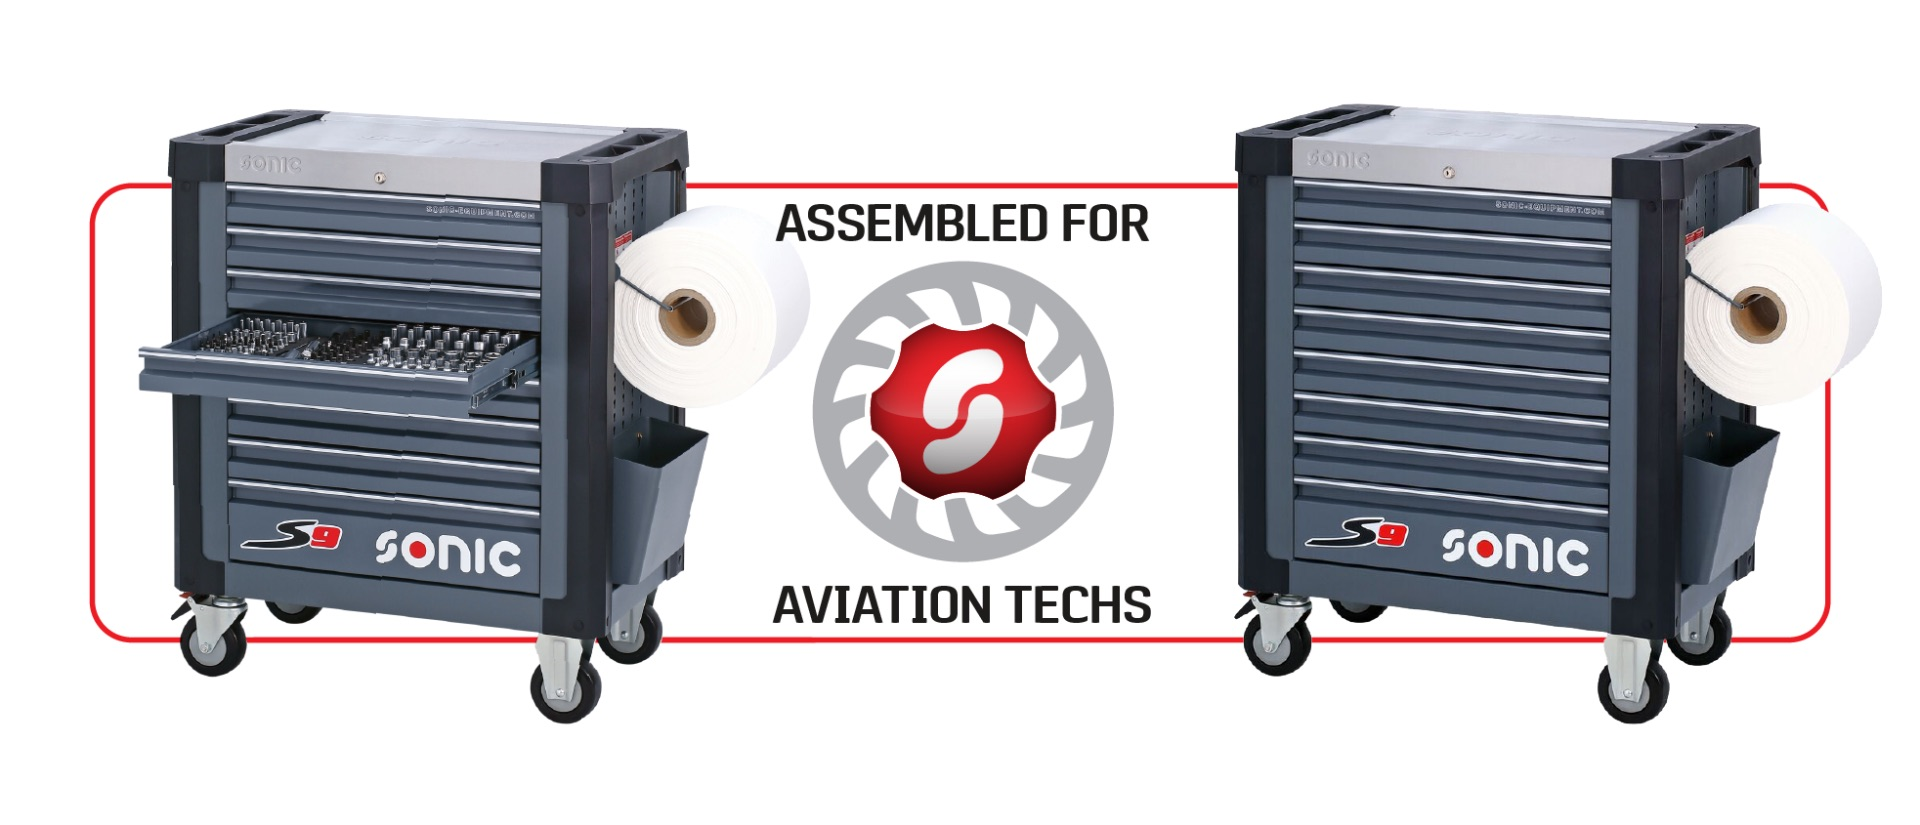 Best Aviation Tool Kit in the Industry